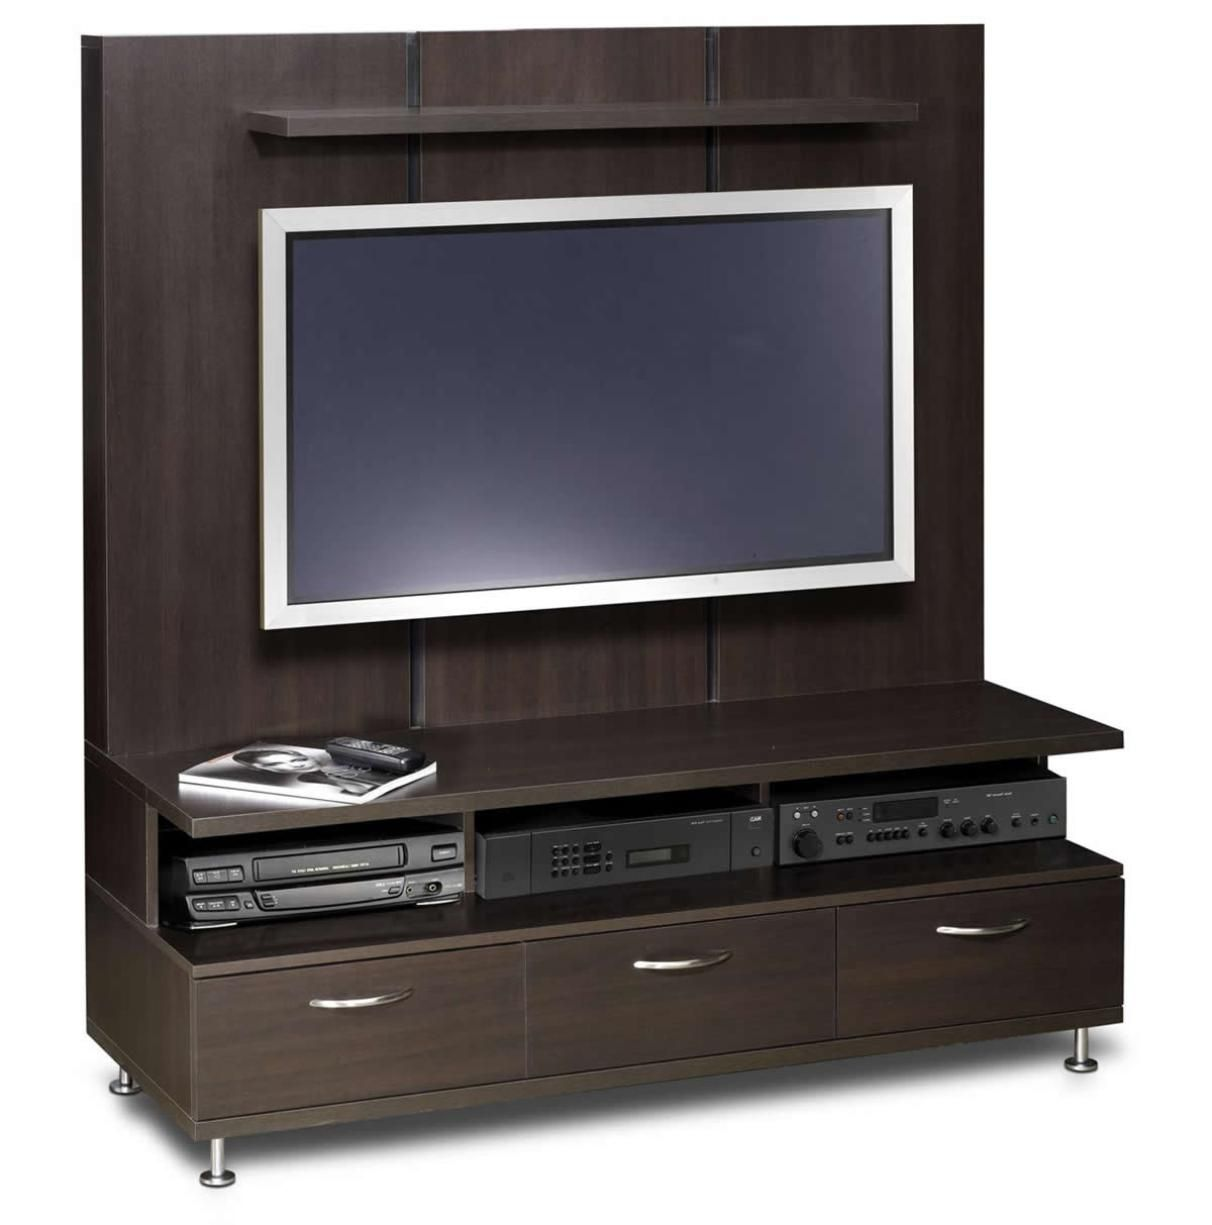 woodworking plans plasma tv stand plans free download plasma tv stand plans wood plasma tv. Black Bedroom Furniture Sets. Home Design Ideas